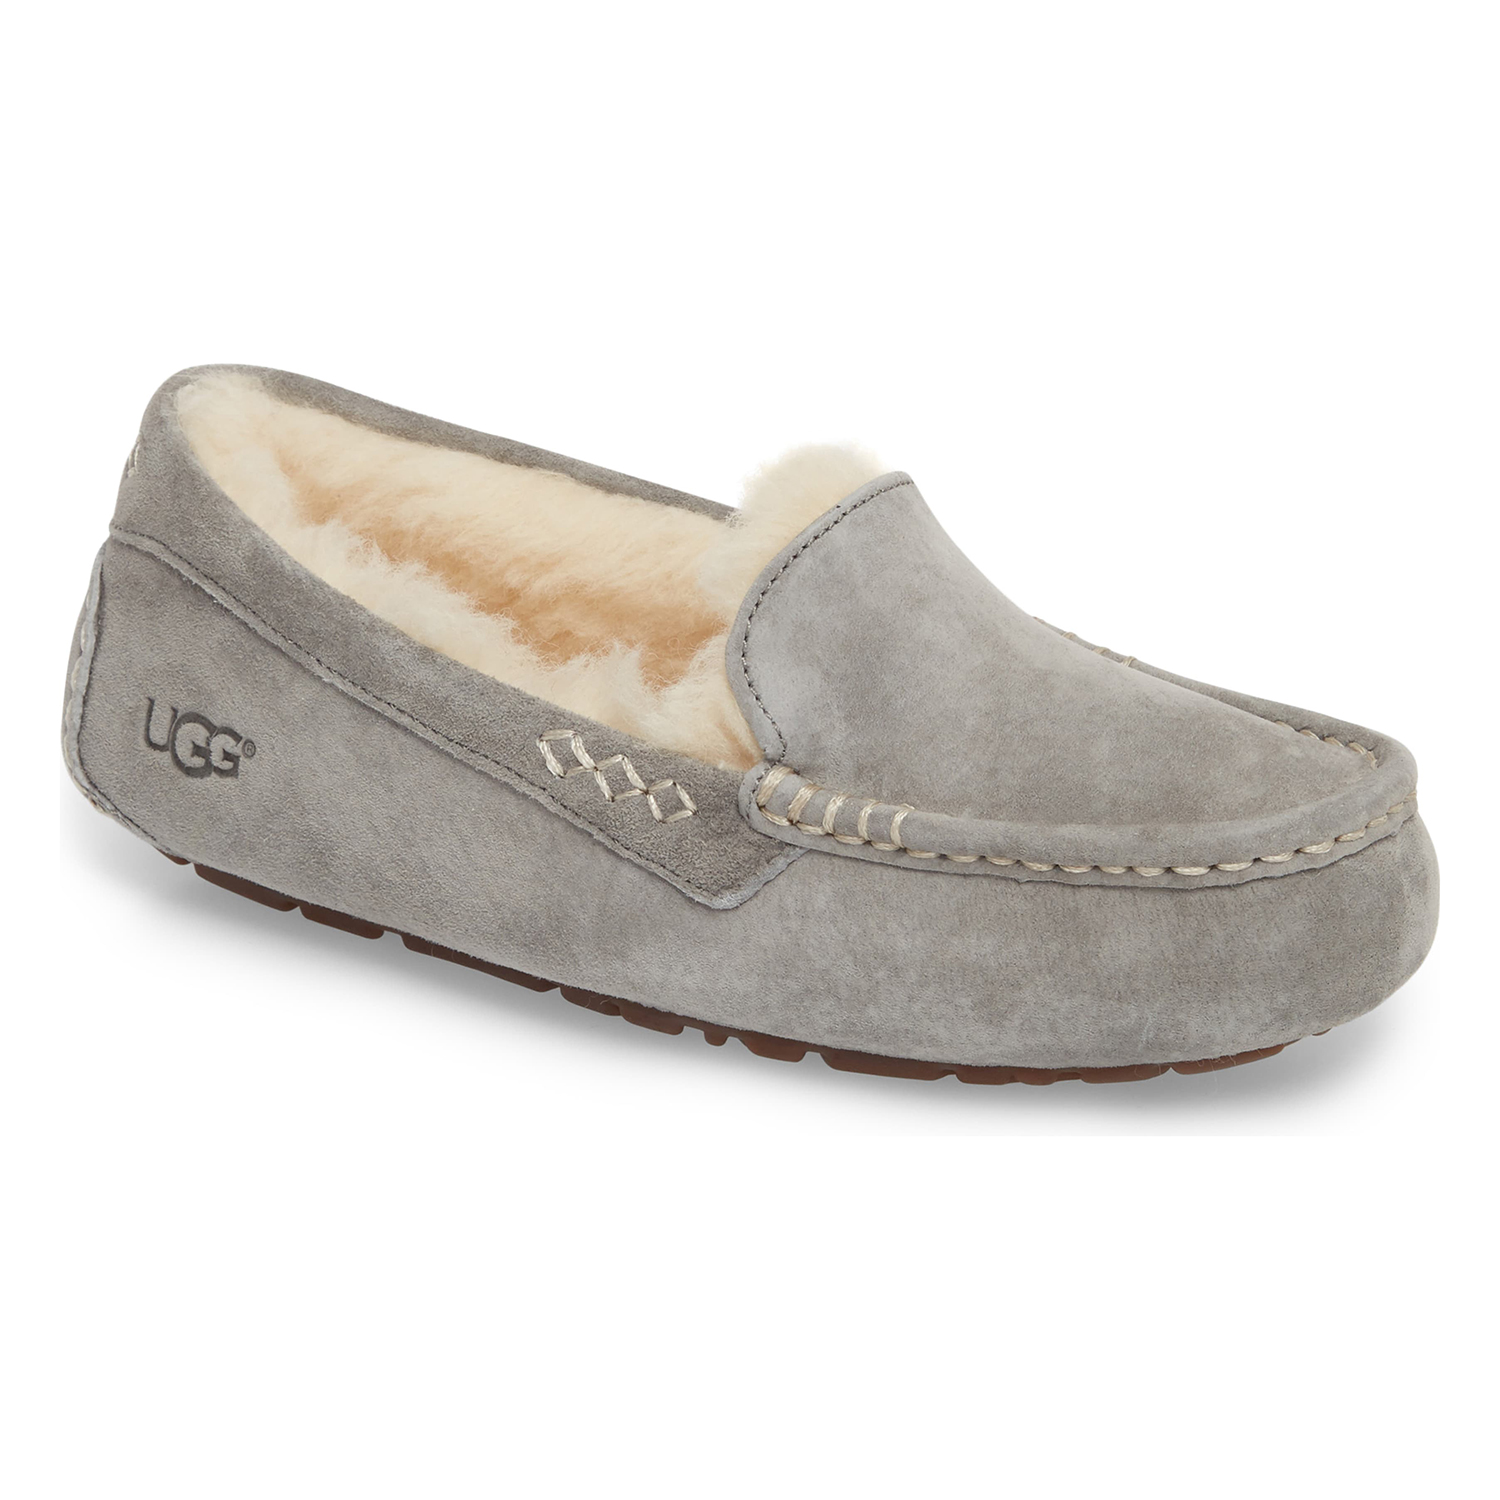 Ugg Ansley Water Resistant Slipper Light Grey